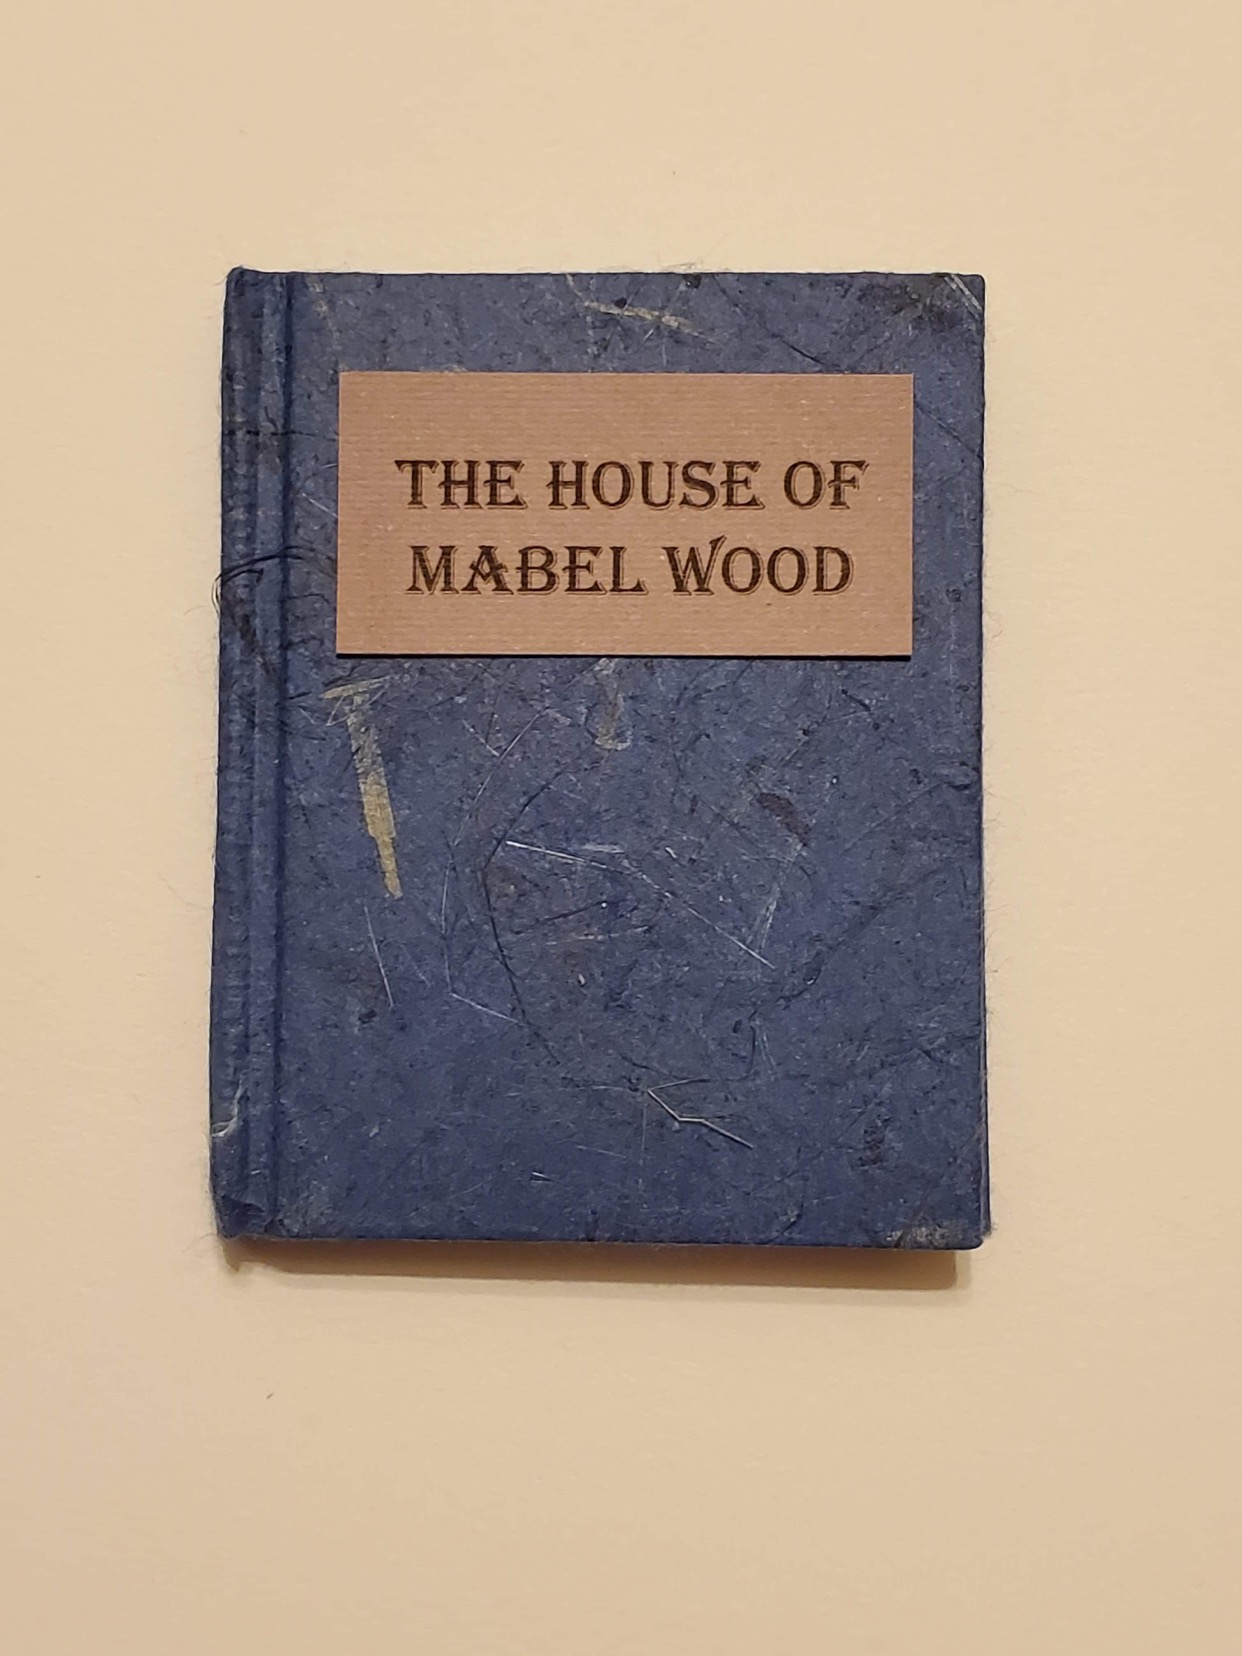 The House of Mable Wood